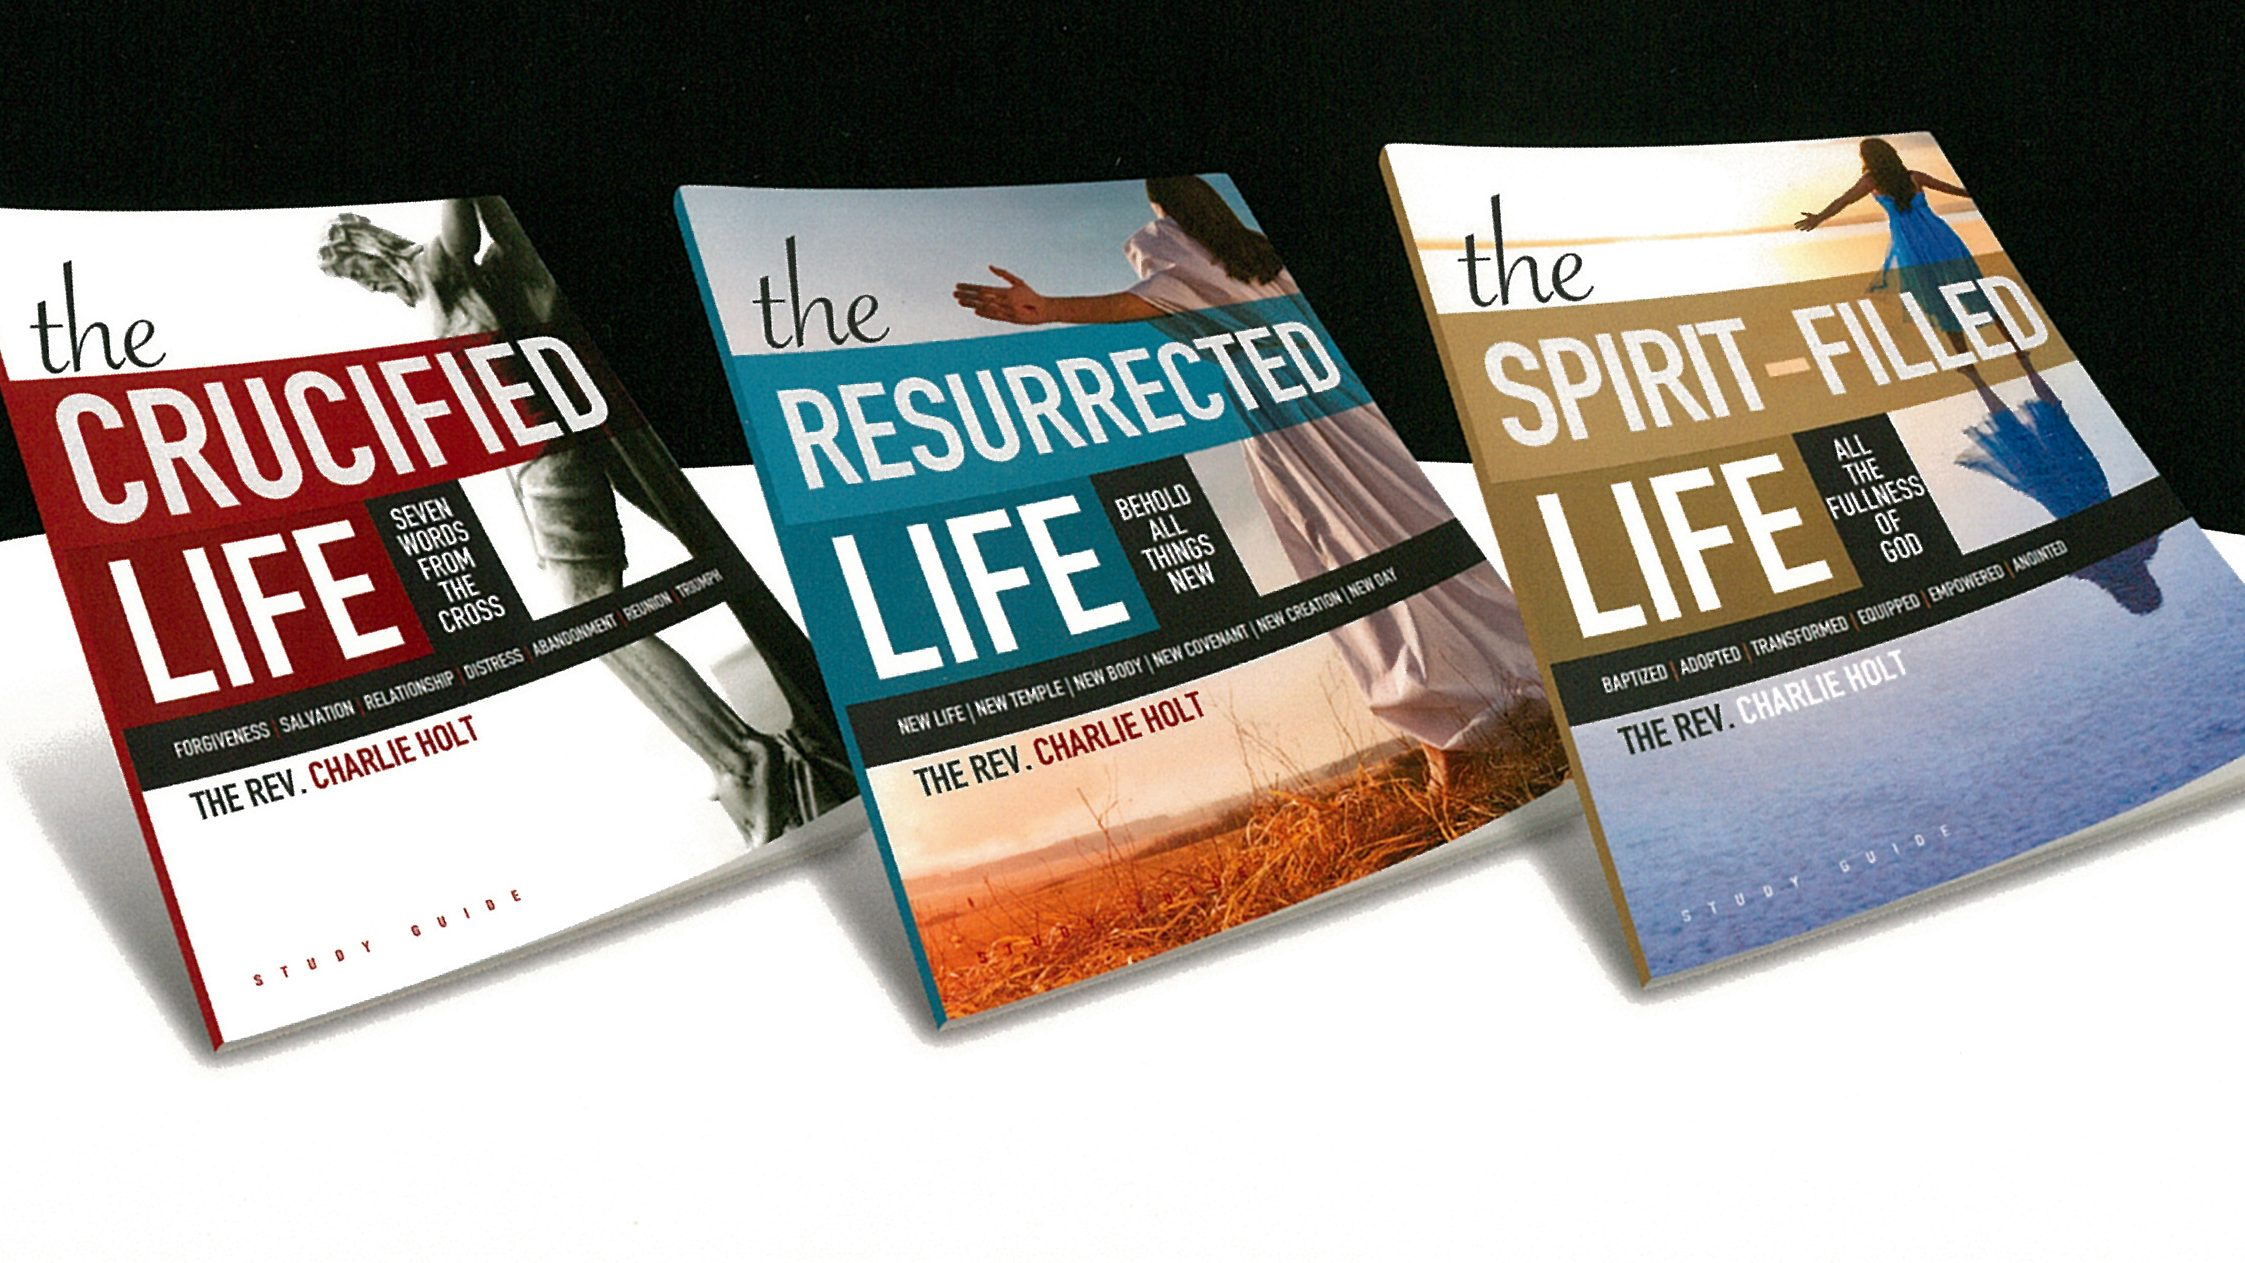 New Adult Education Series: The Christian Life Trilogy